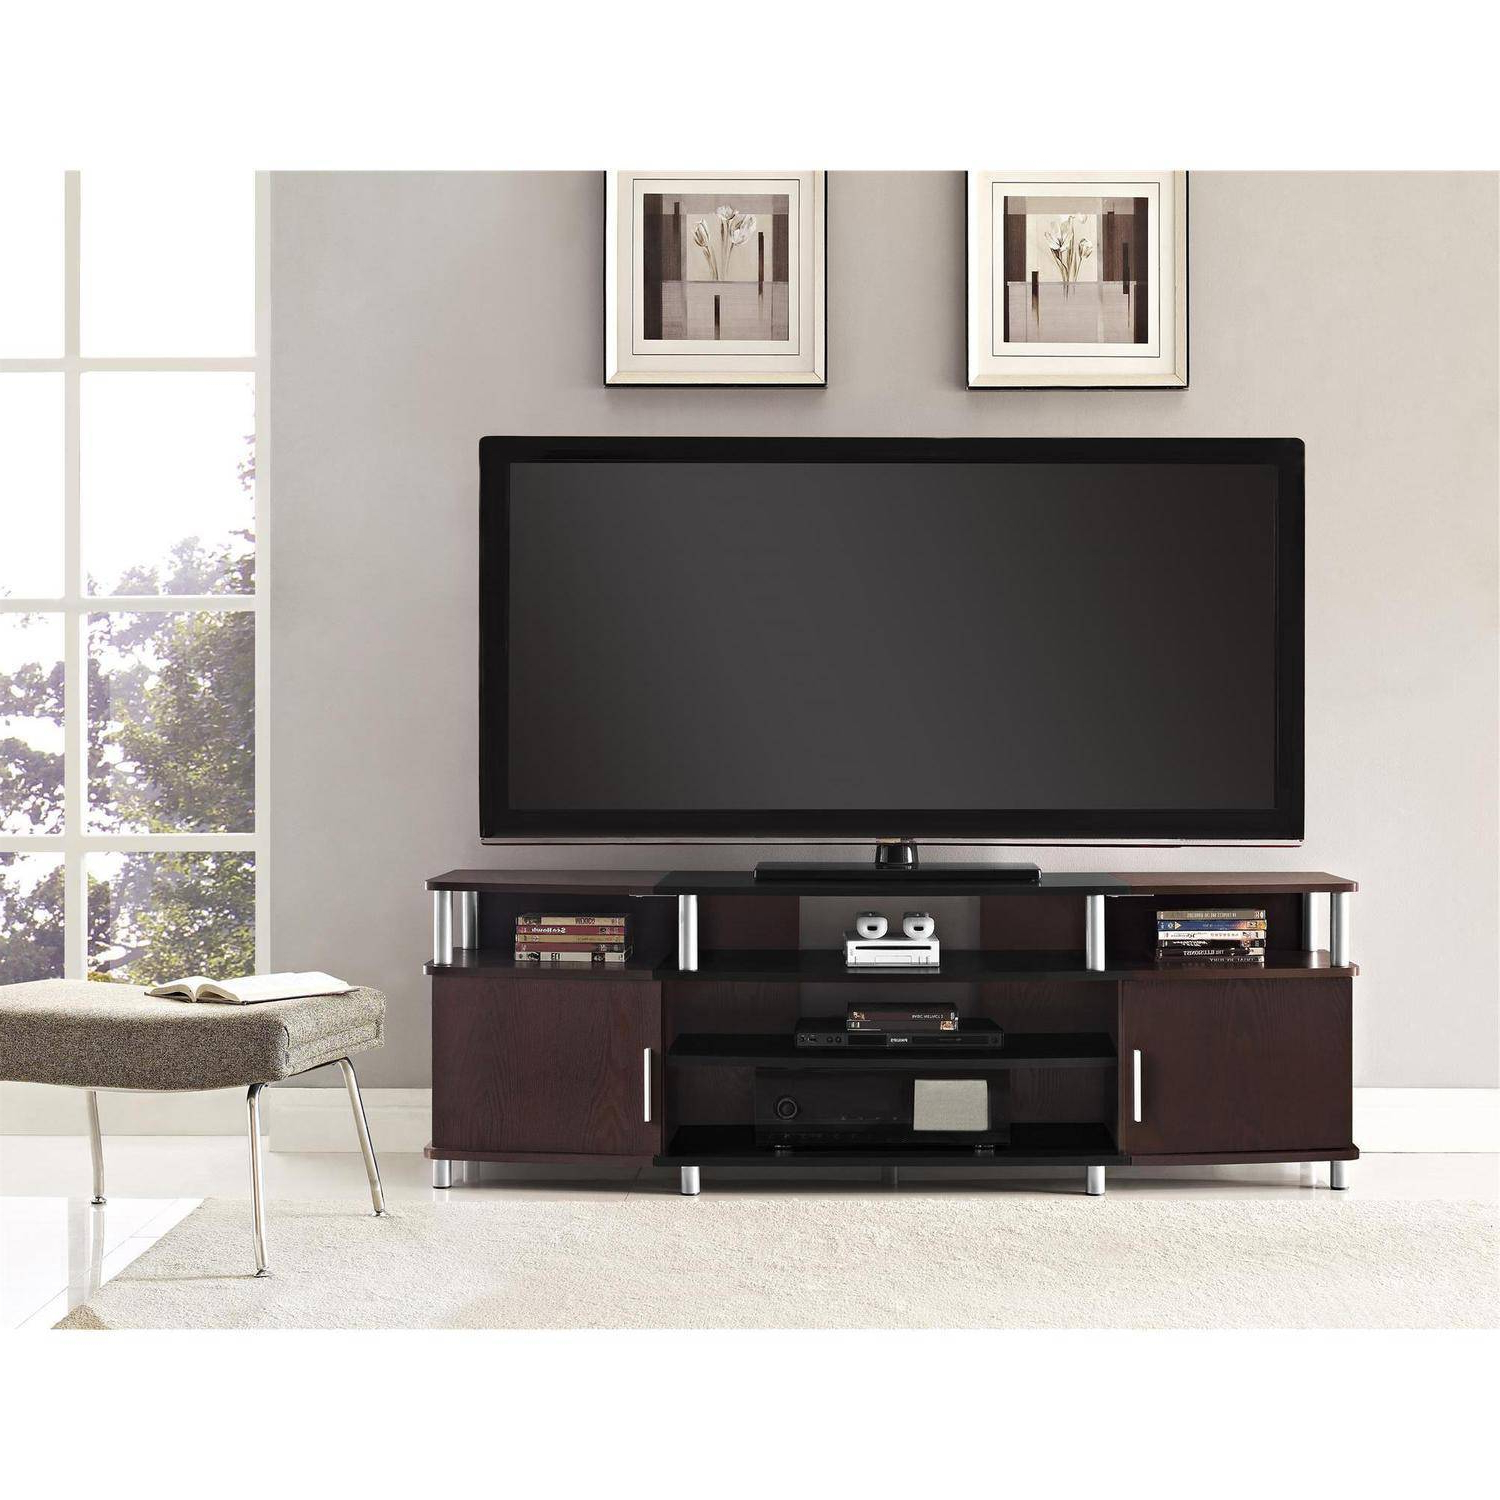 65 Inch Tv Stand Wayfair 55 Corner For 60 Stands With Fireplace 50 Pertaining To Murphy 72 Inch Tv Stands (View 2 of 20)